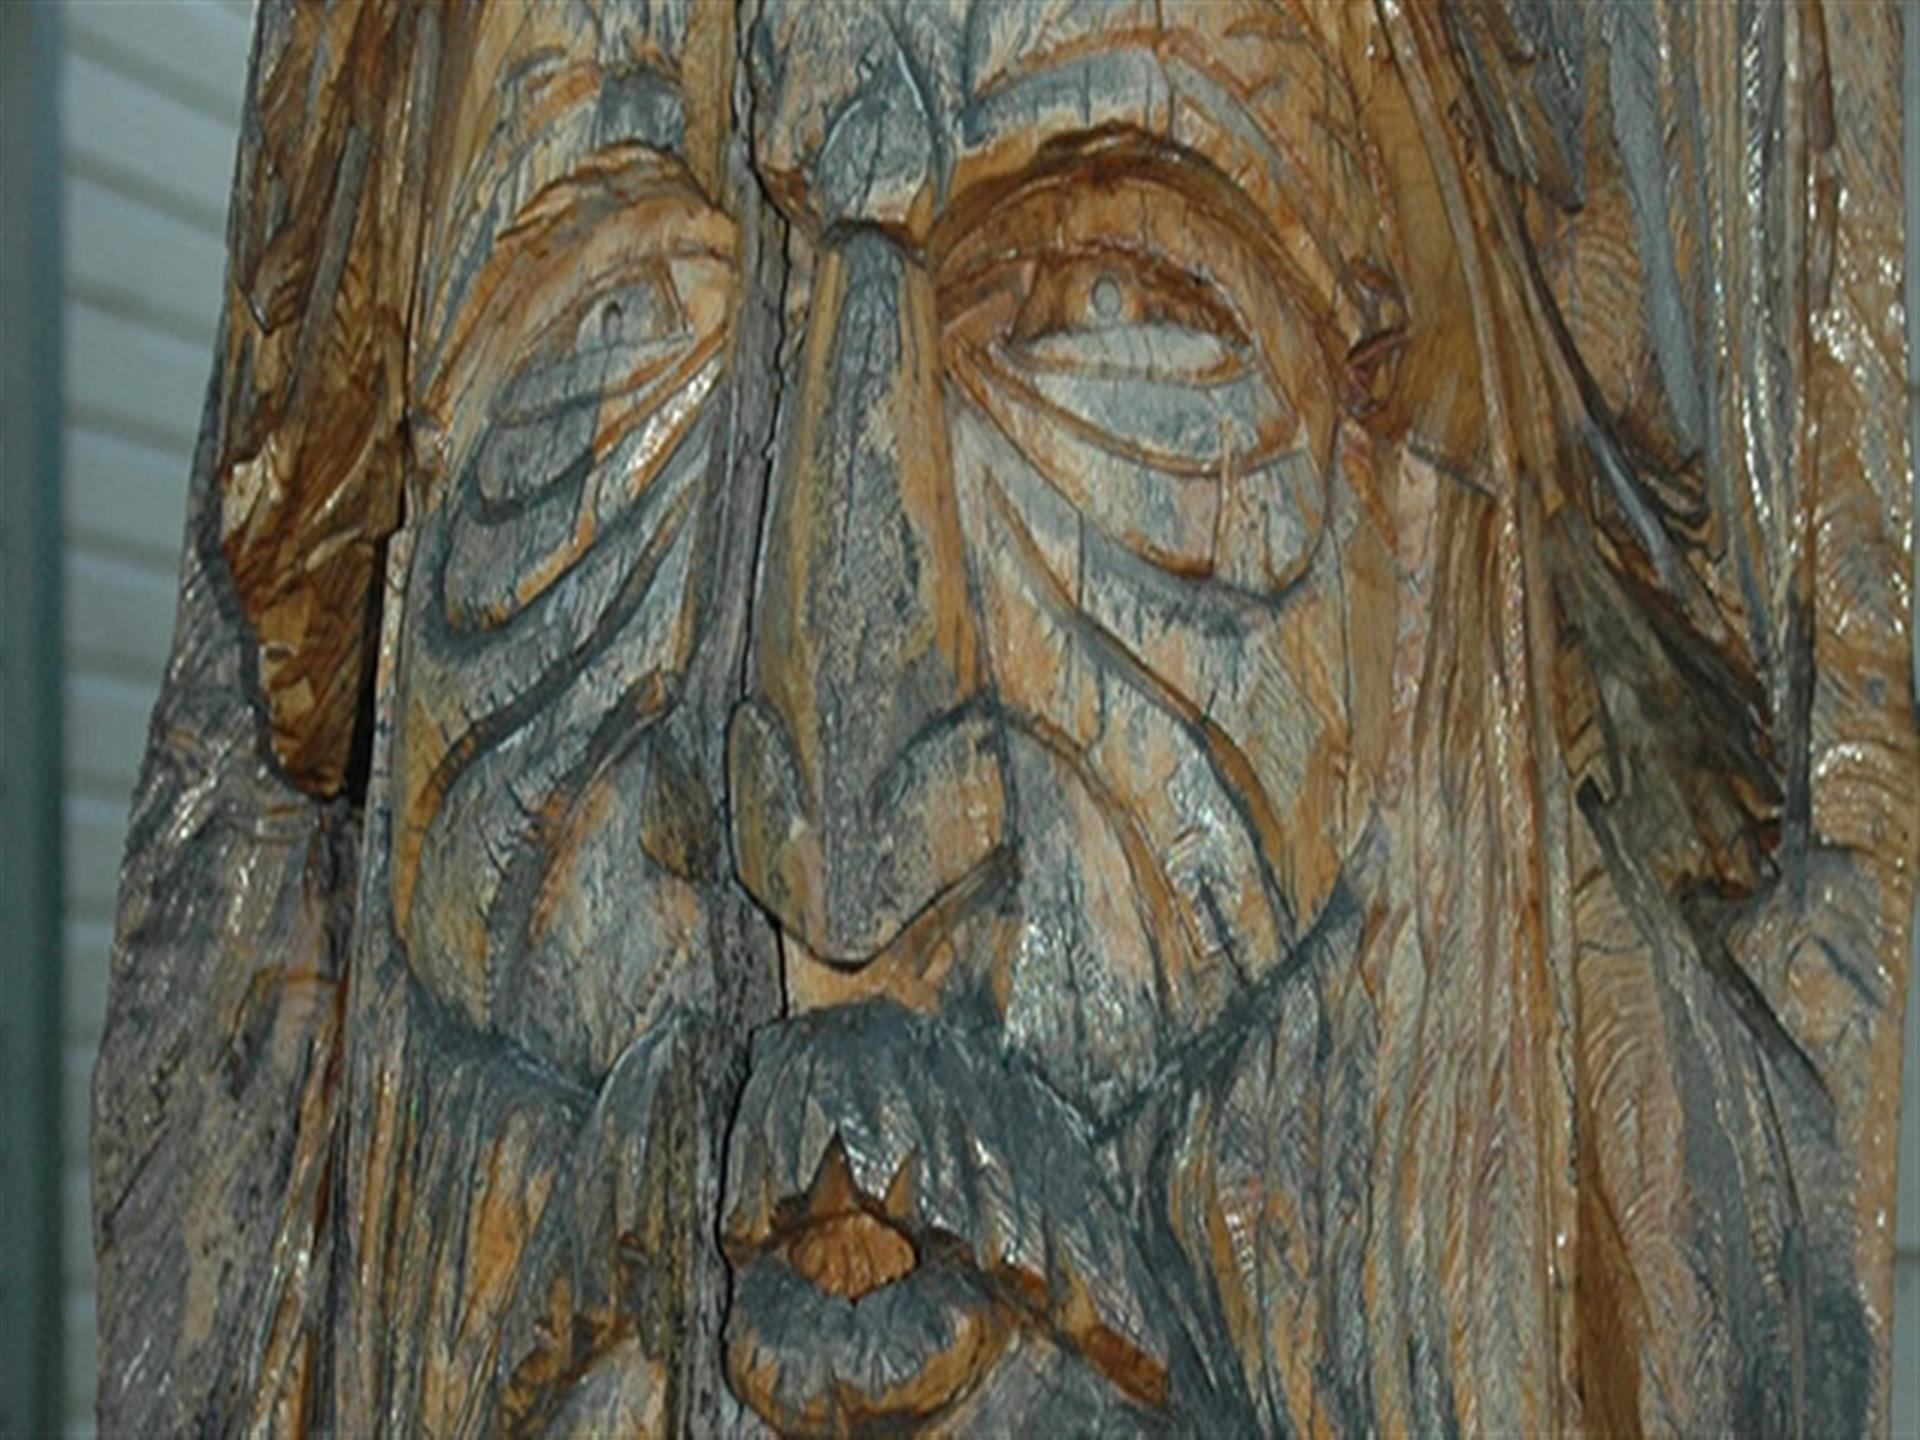 Tree carving of an old man.